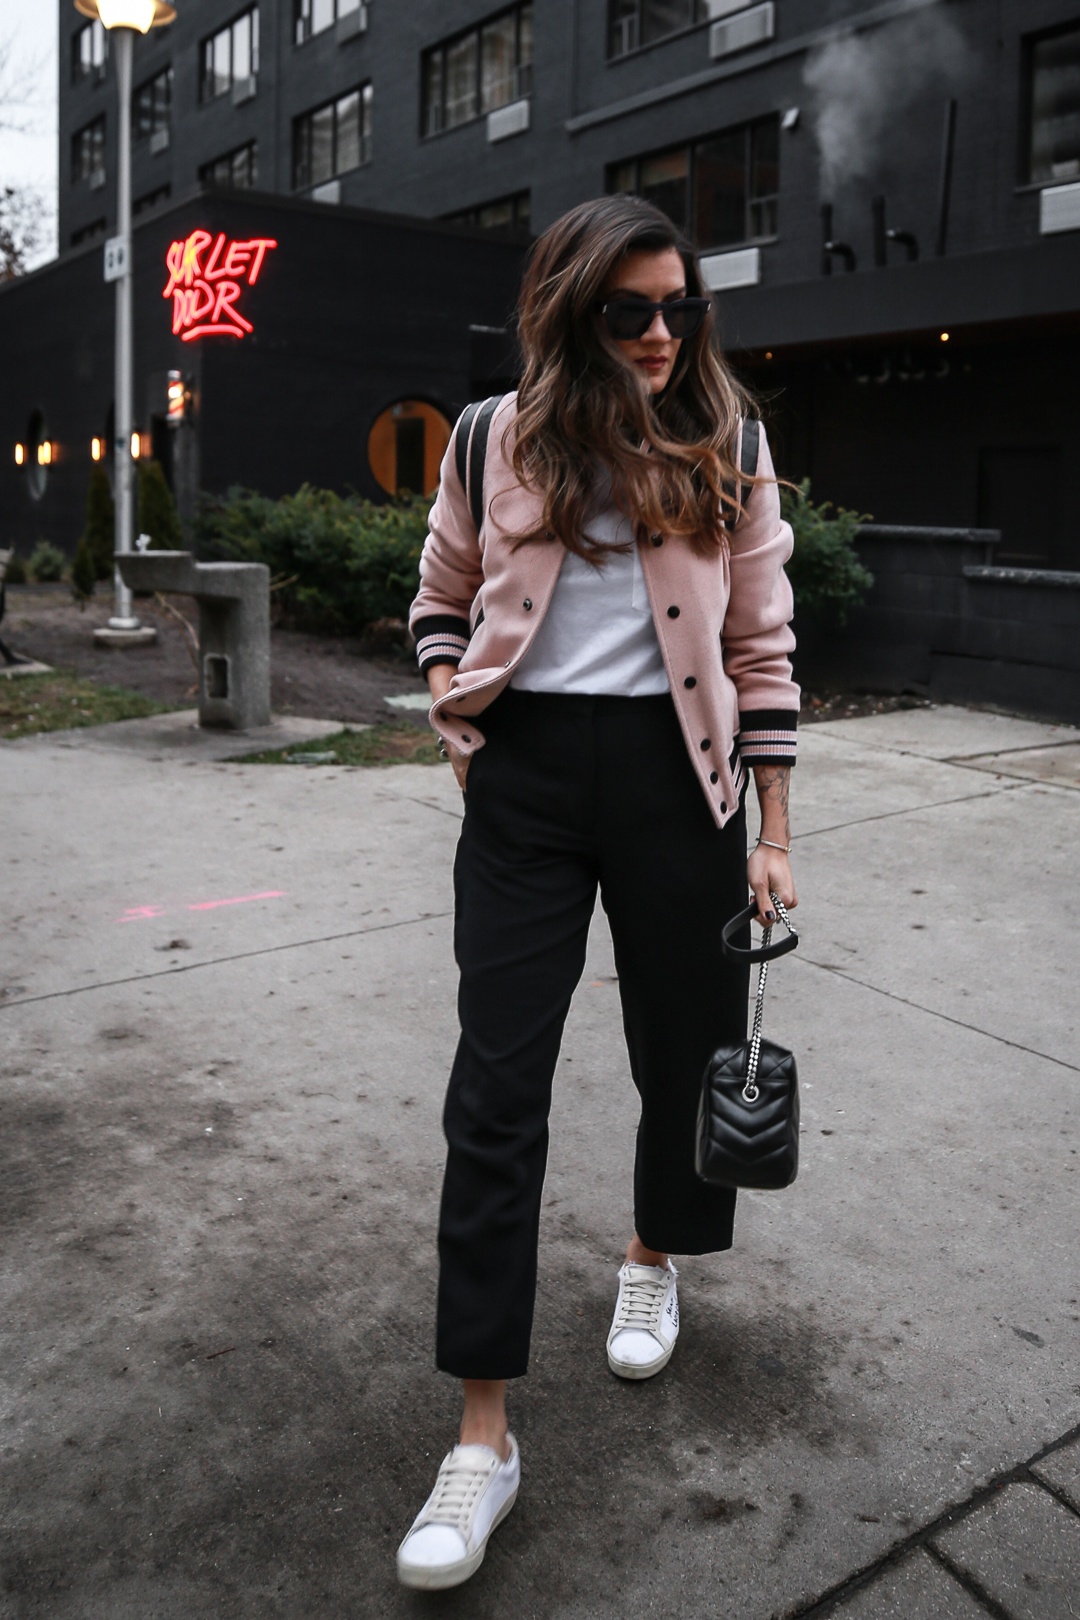 Nathalie Martin wearing Saint Laurent pink Teddy Jacket, YSL Lou Lou small bowling bag, white canvas sneakers, Aritzia Jallade Pant, street style, woahstyle.com_4006-2.jpg